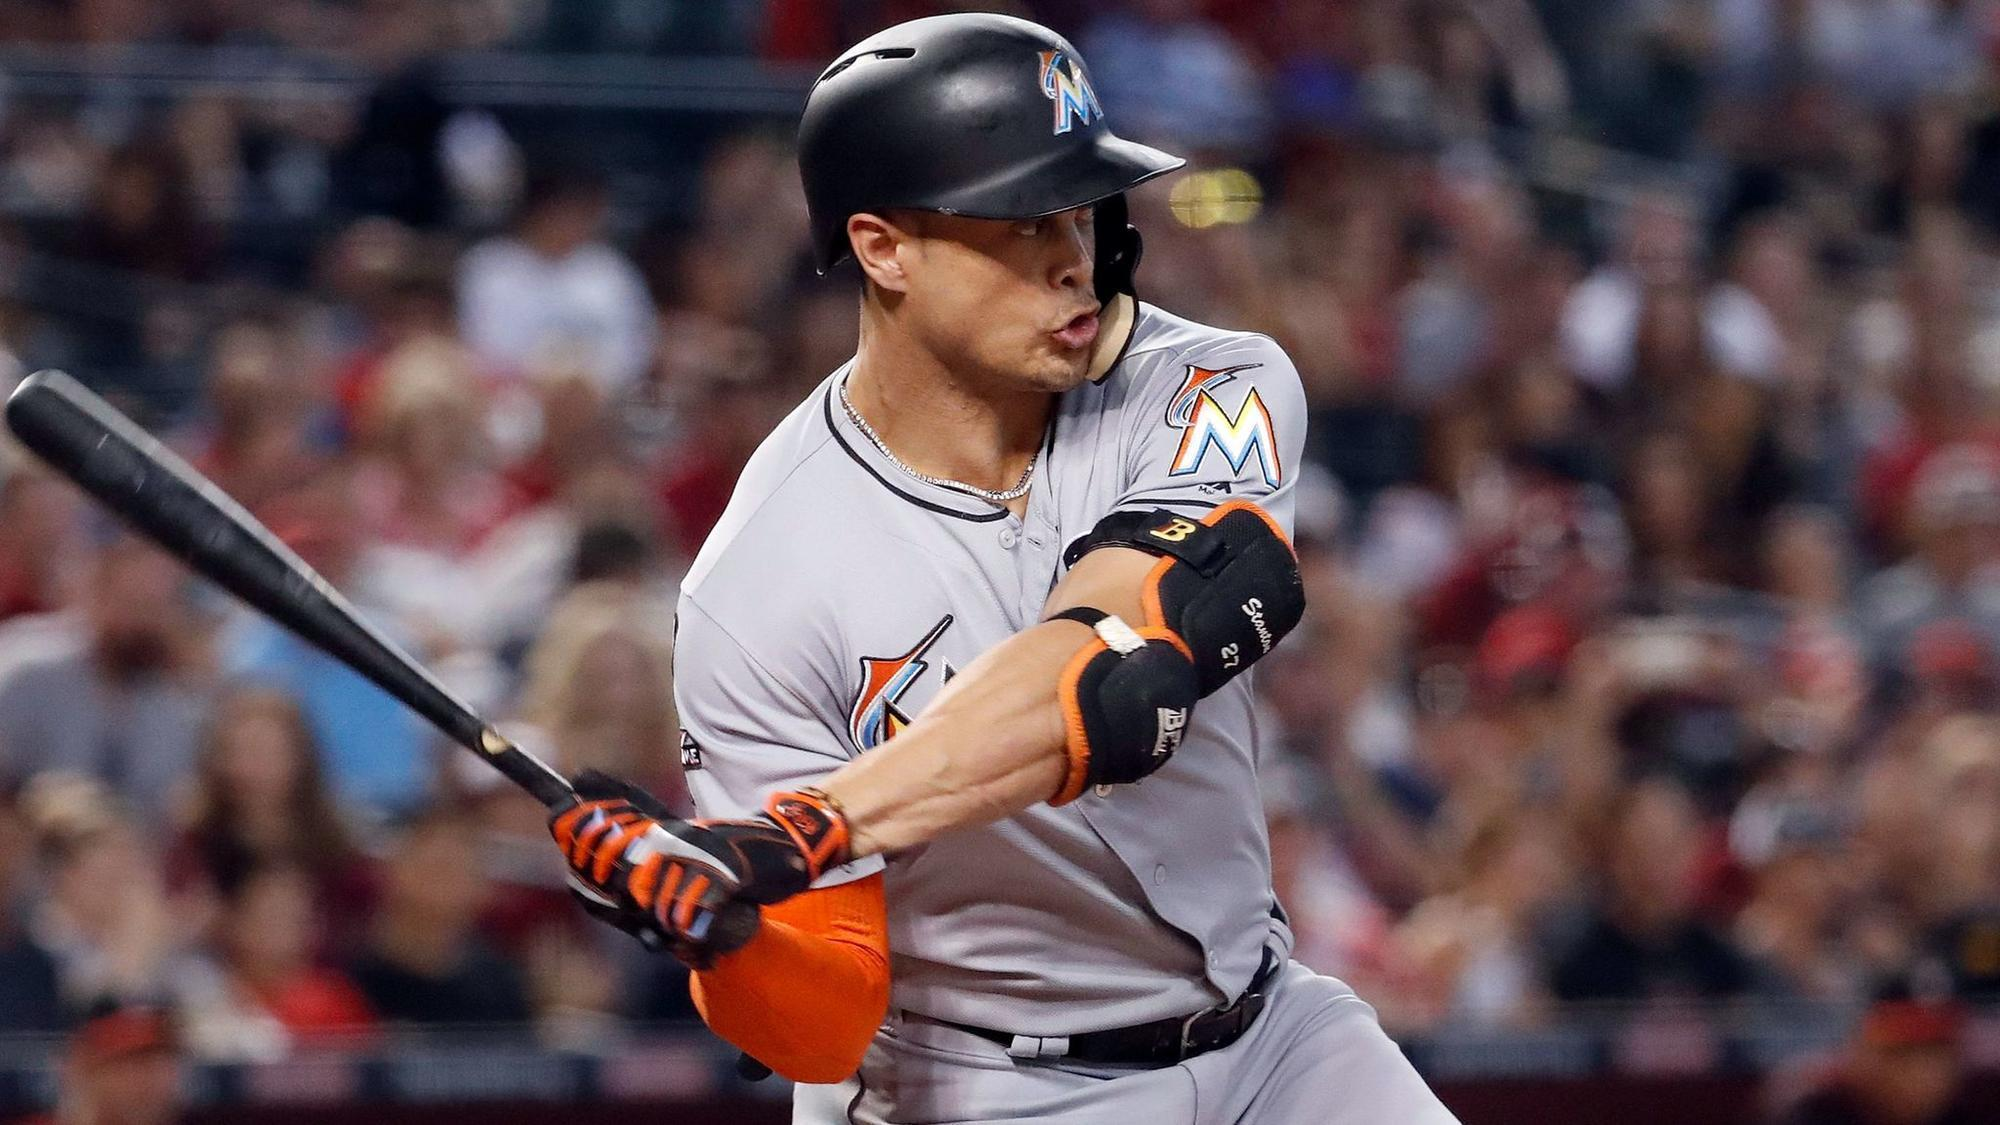 Marlins Slugger, Giancarlo Stanton Speaks For First Time